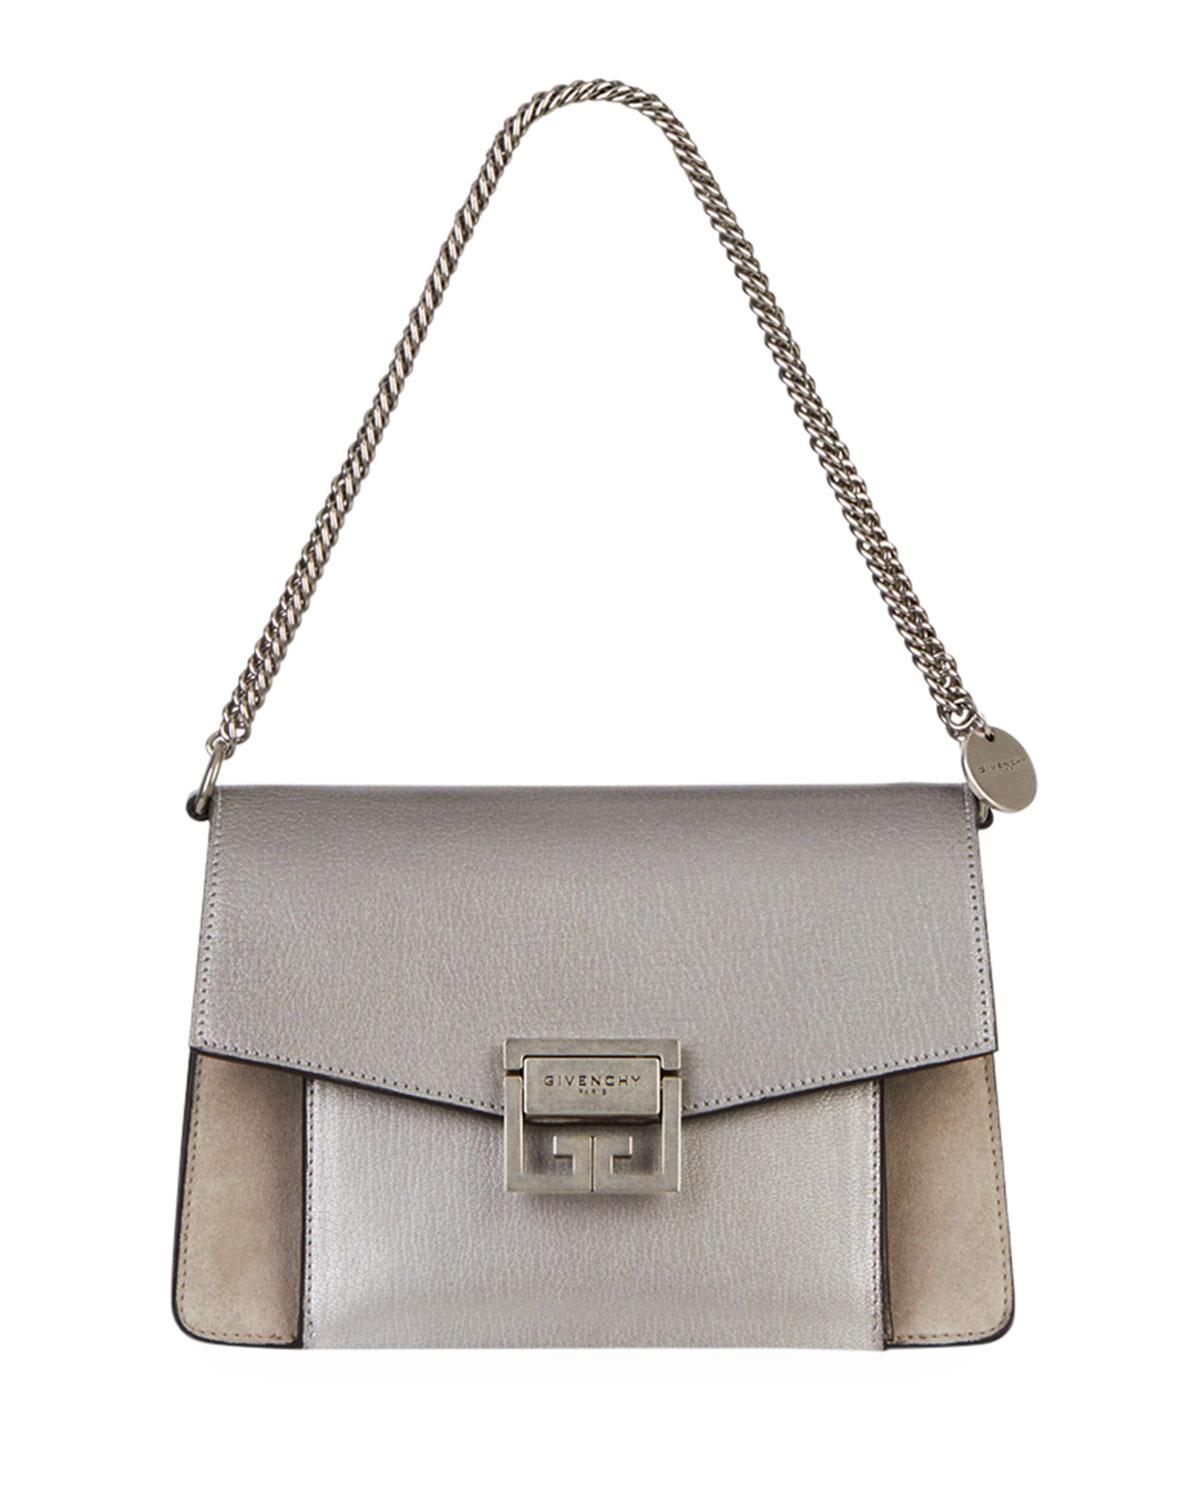 Givenchy - Gv3 Small Metallic Leather   Suede Shoulder Bag - Lyst. View  fullscreen 7b497c2a4a